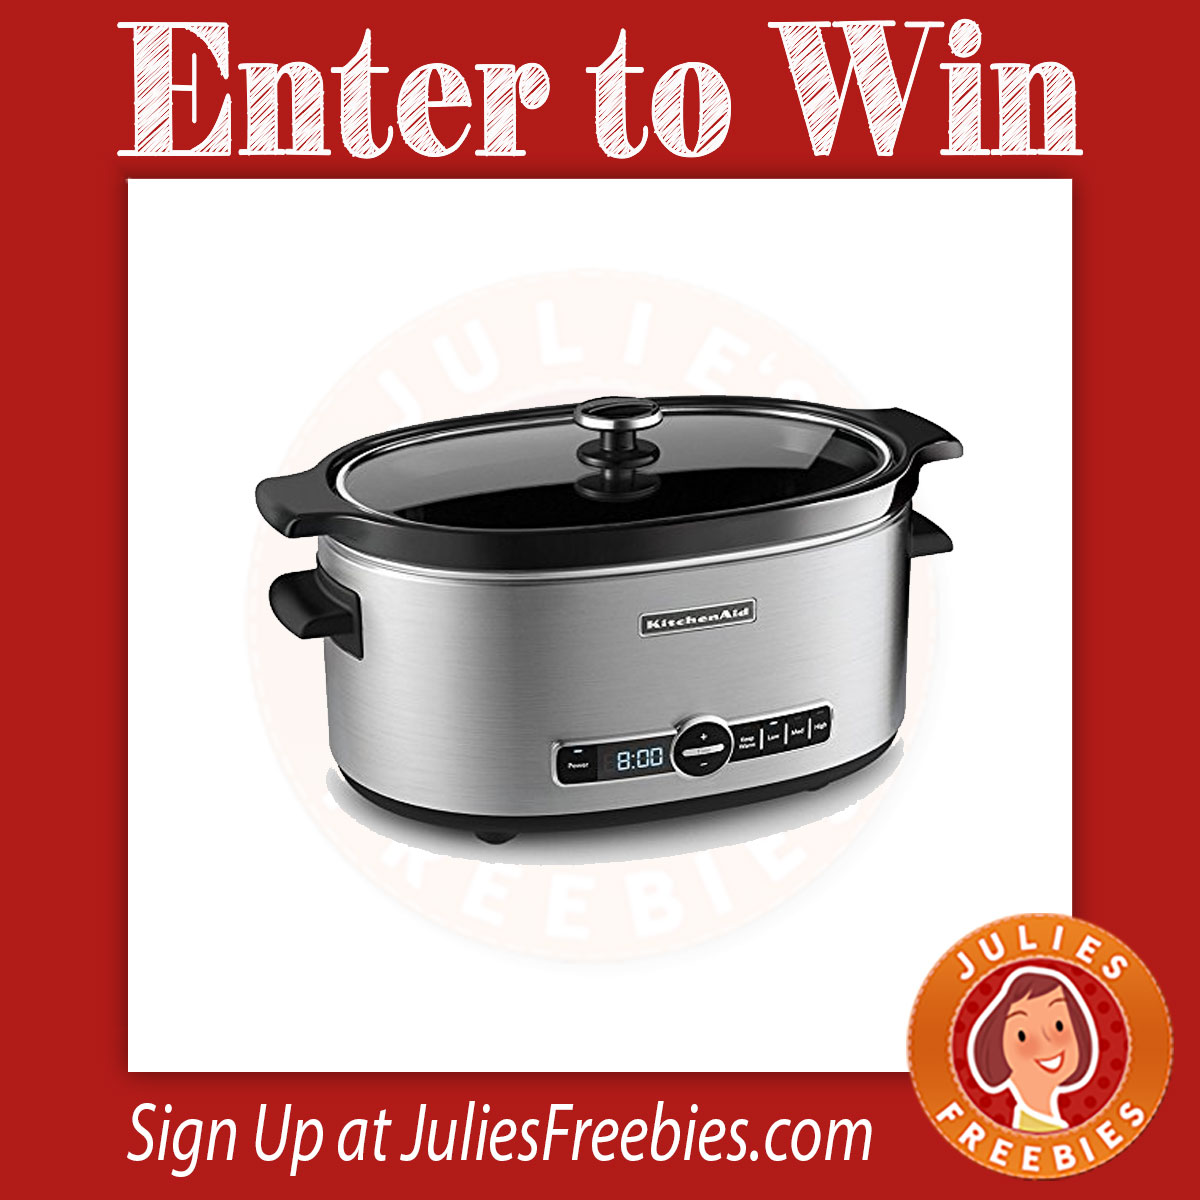 kitchen aid slow cooker what is the best faucet win a kitchenaid 6 quart julie 39s freebies